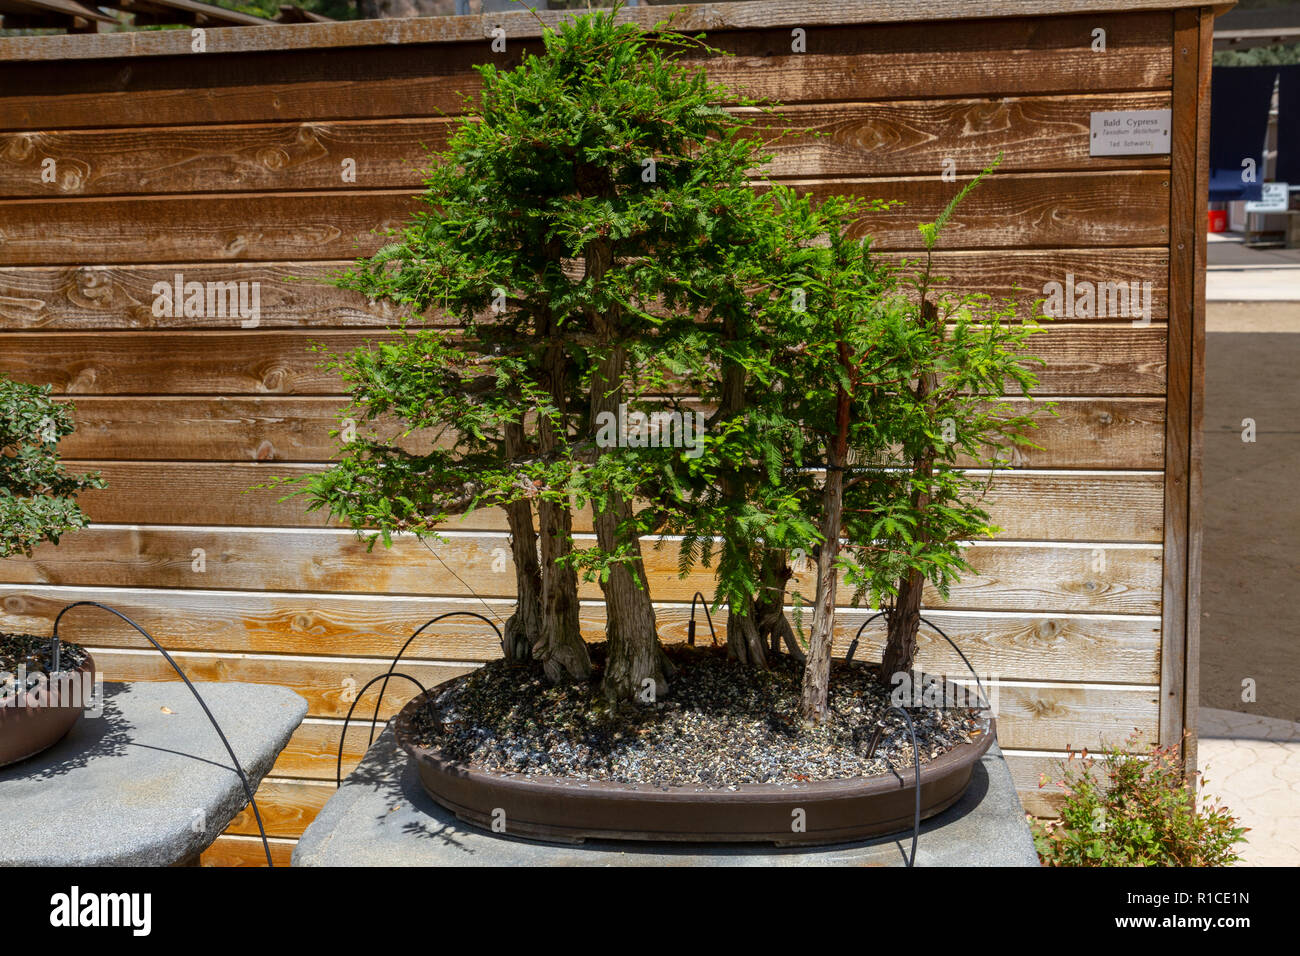 A Bald Cypress Taxodium Distichum Bonsai Pavilion San Diego Zoo Safari Park Escondido Ca United States Stock Photo Alamy